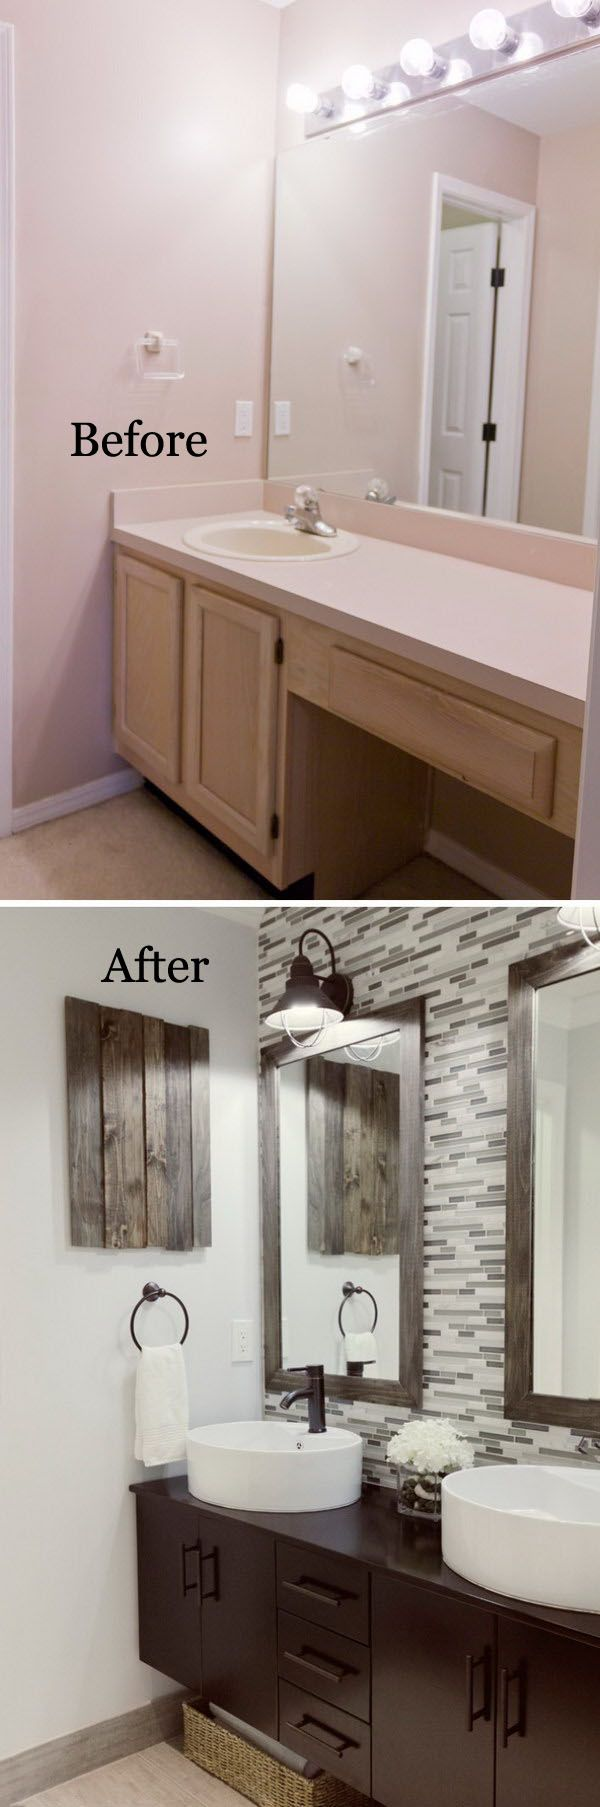 Bathroom Renovation Diy best 25+ diy bathroom remodel ideas on pinterest | rust update